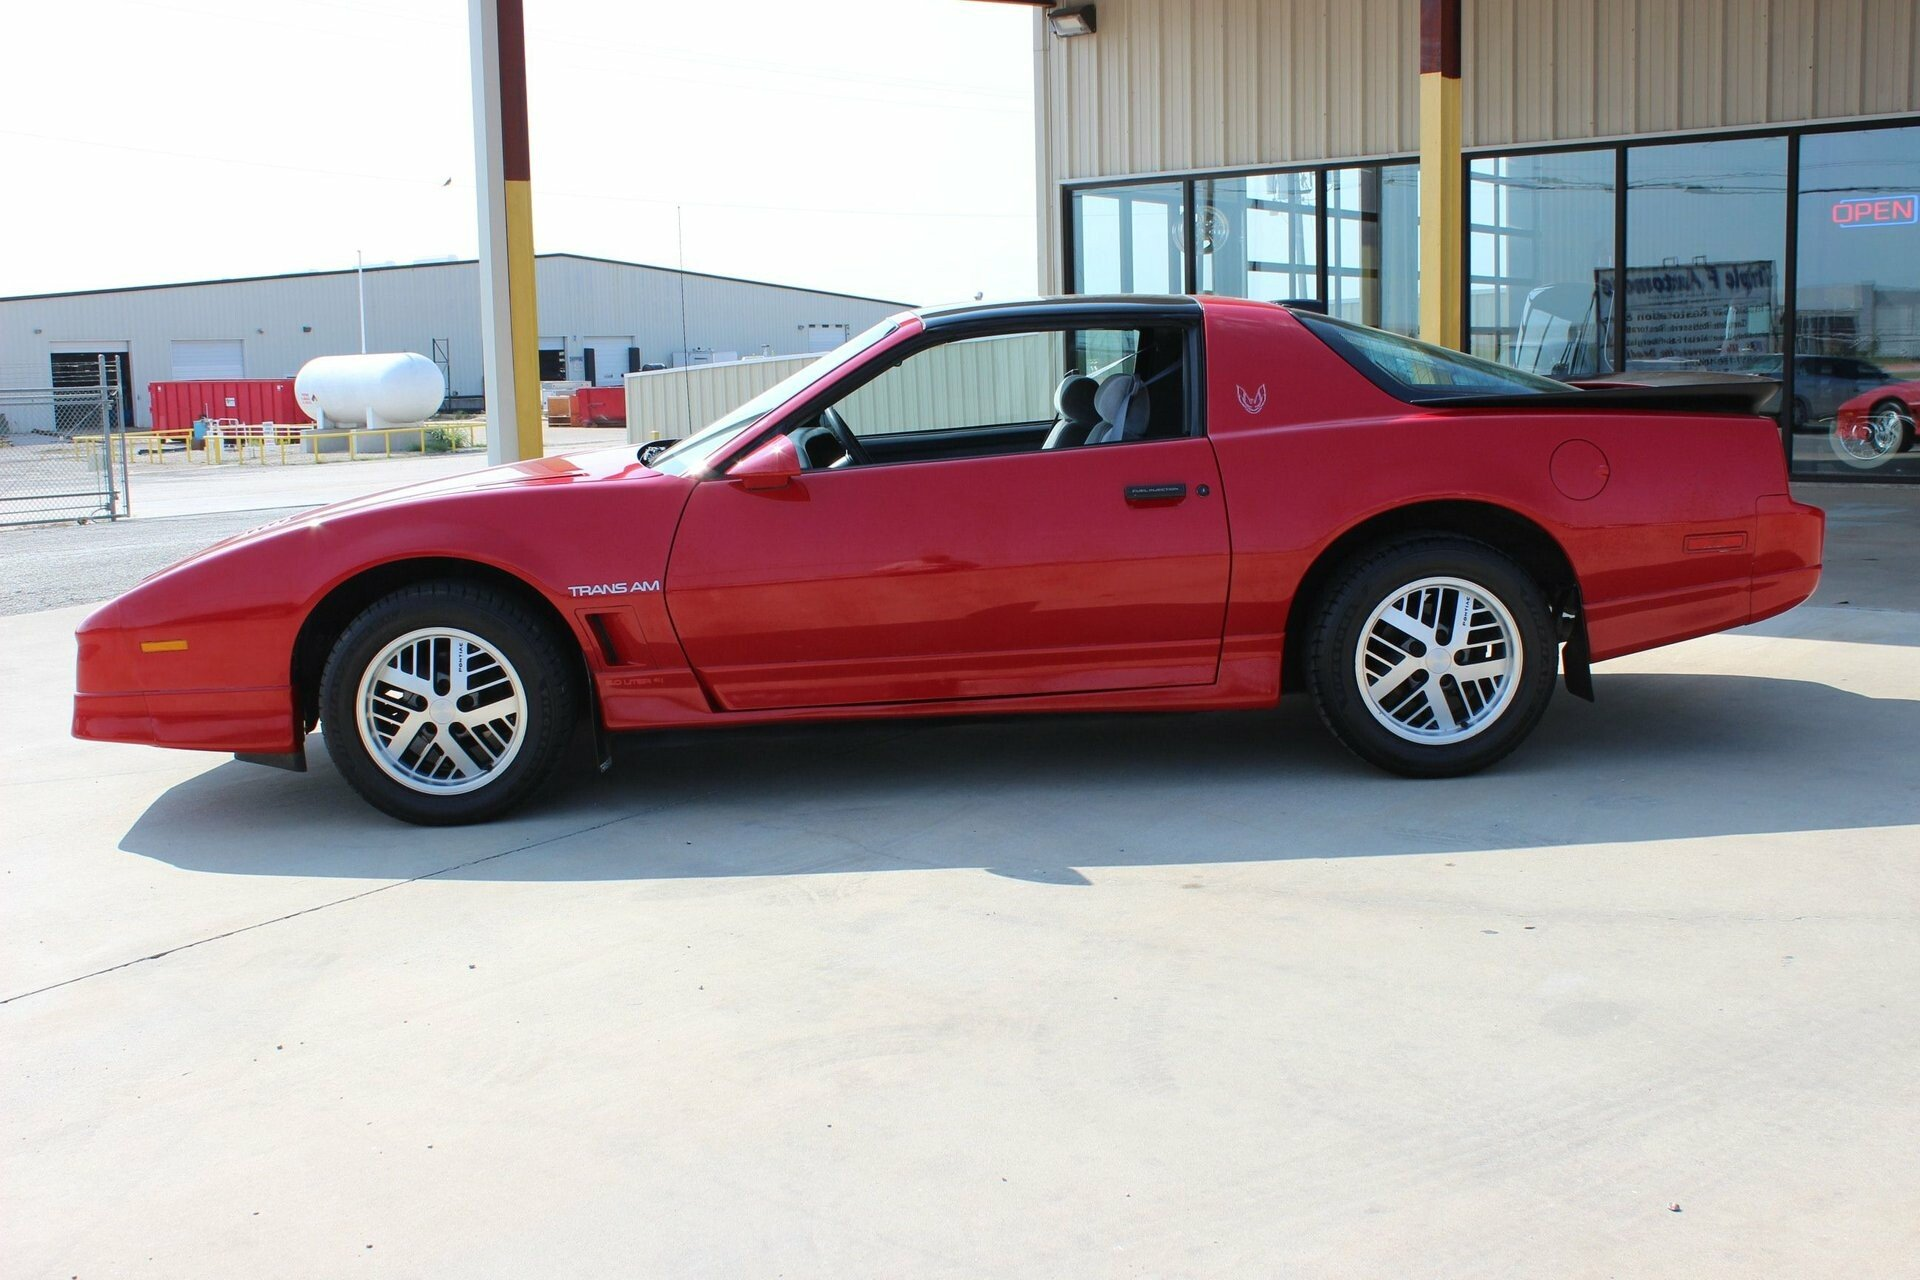 1986 pontiac firebird trans am coupe for sale near forth worth texas 76177 classics on autotrader 1986 pontiac firebird trans am coupe for sale near forth worth texas 76177 classics on autotrader